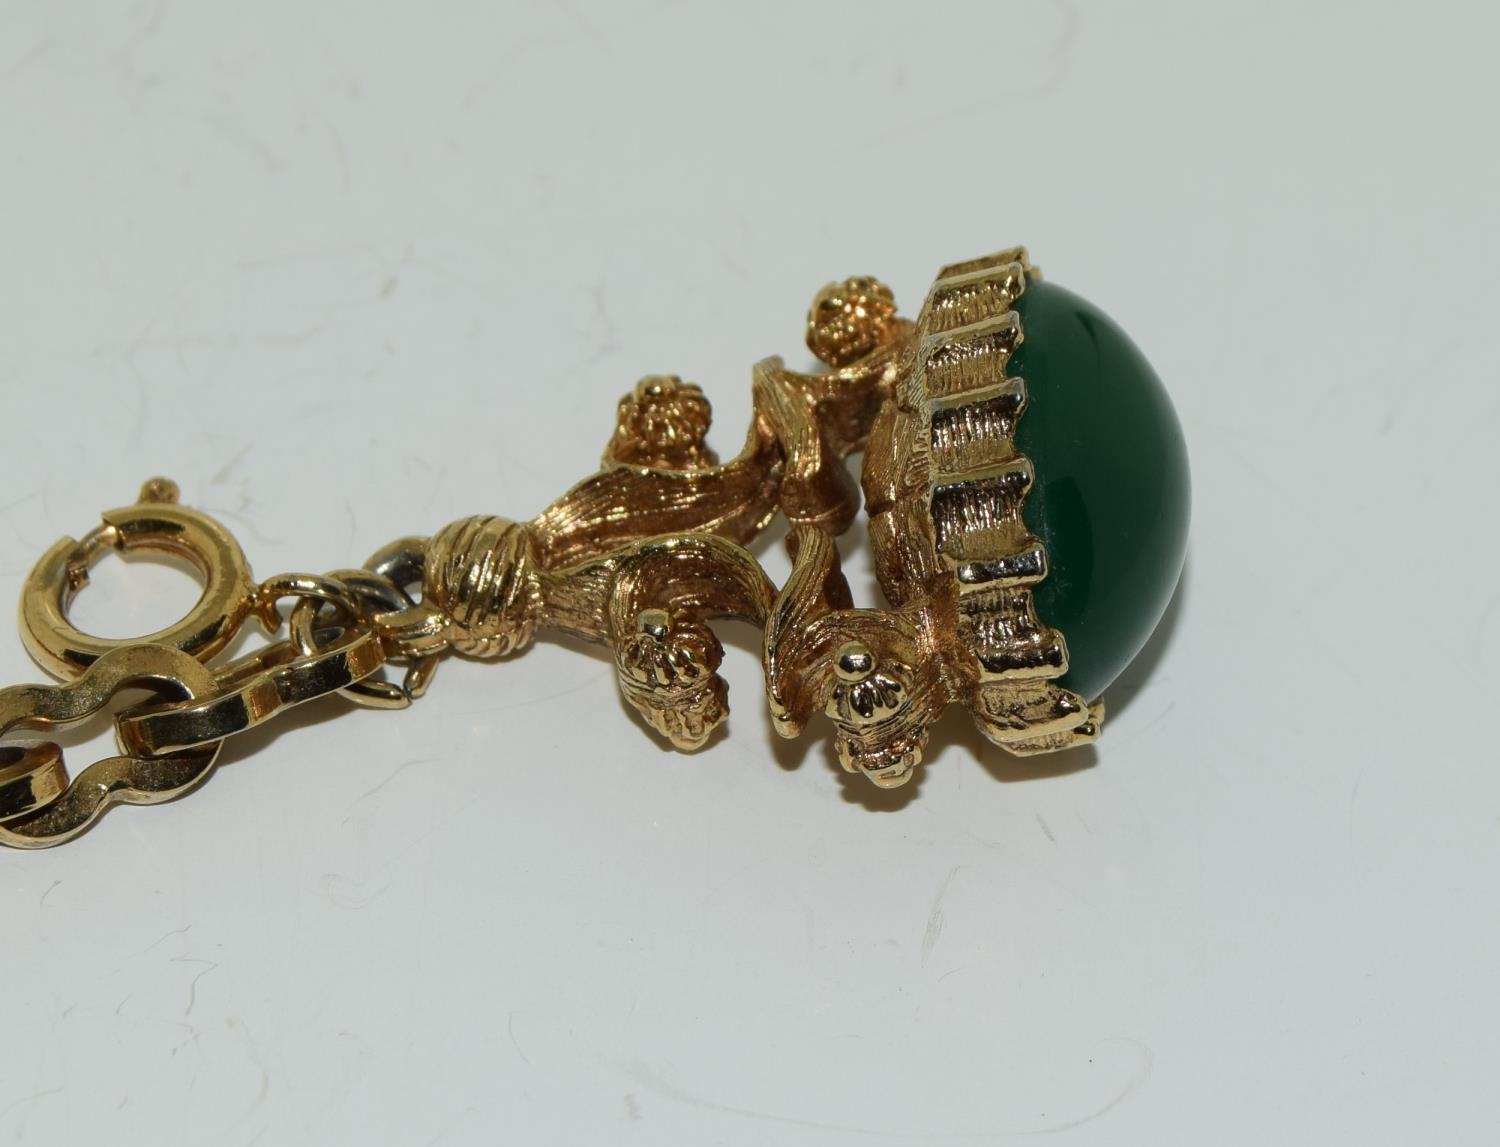 Gilded watch chain and fob set with a cabochon jade stone - Image 2 of 6